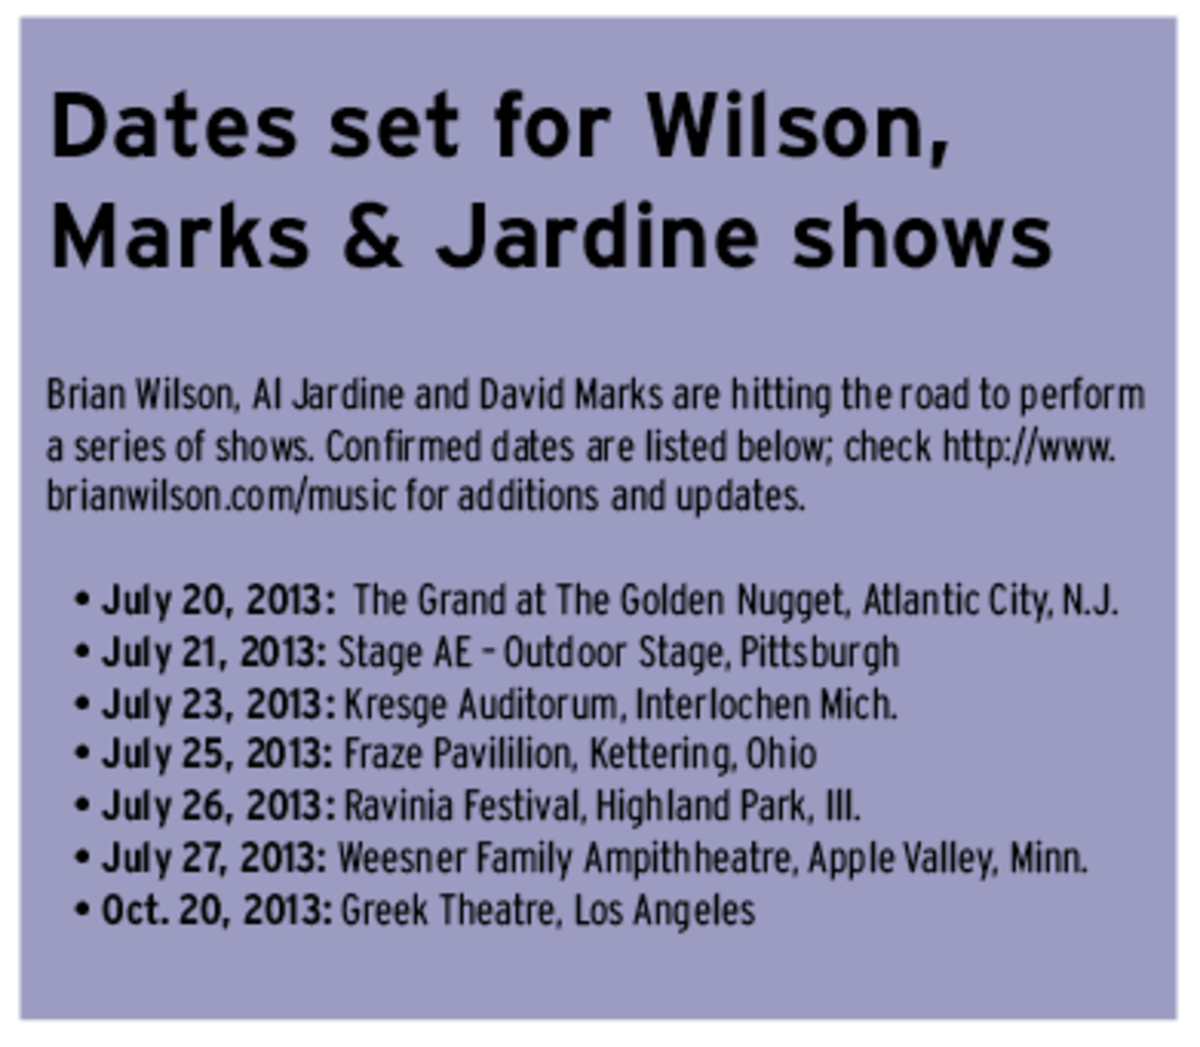 Brian Wilson David Marks and Al Jardine 2013 tour dates